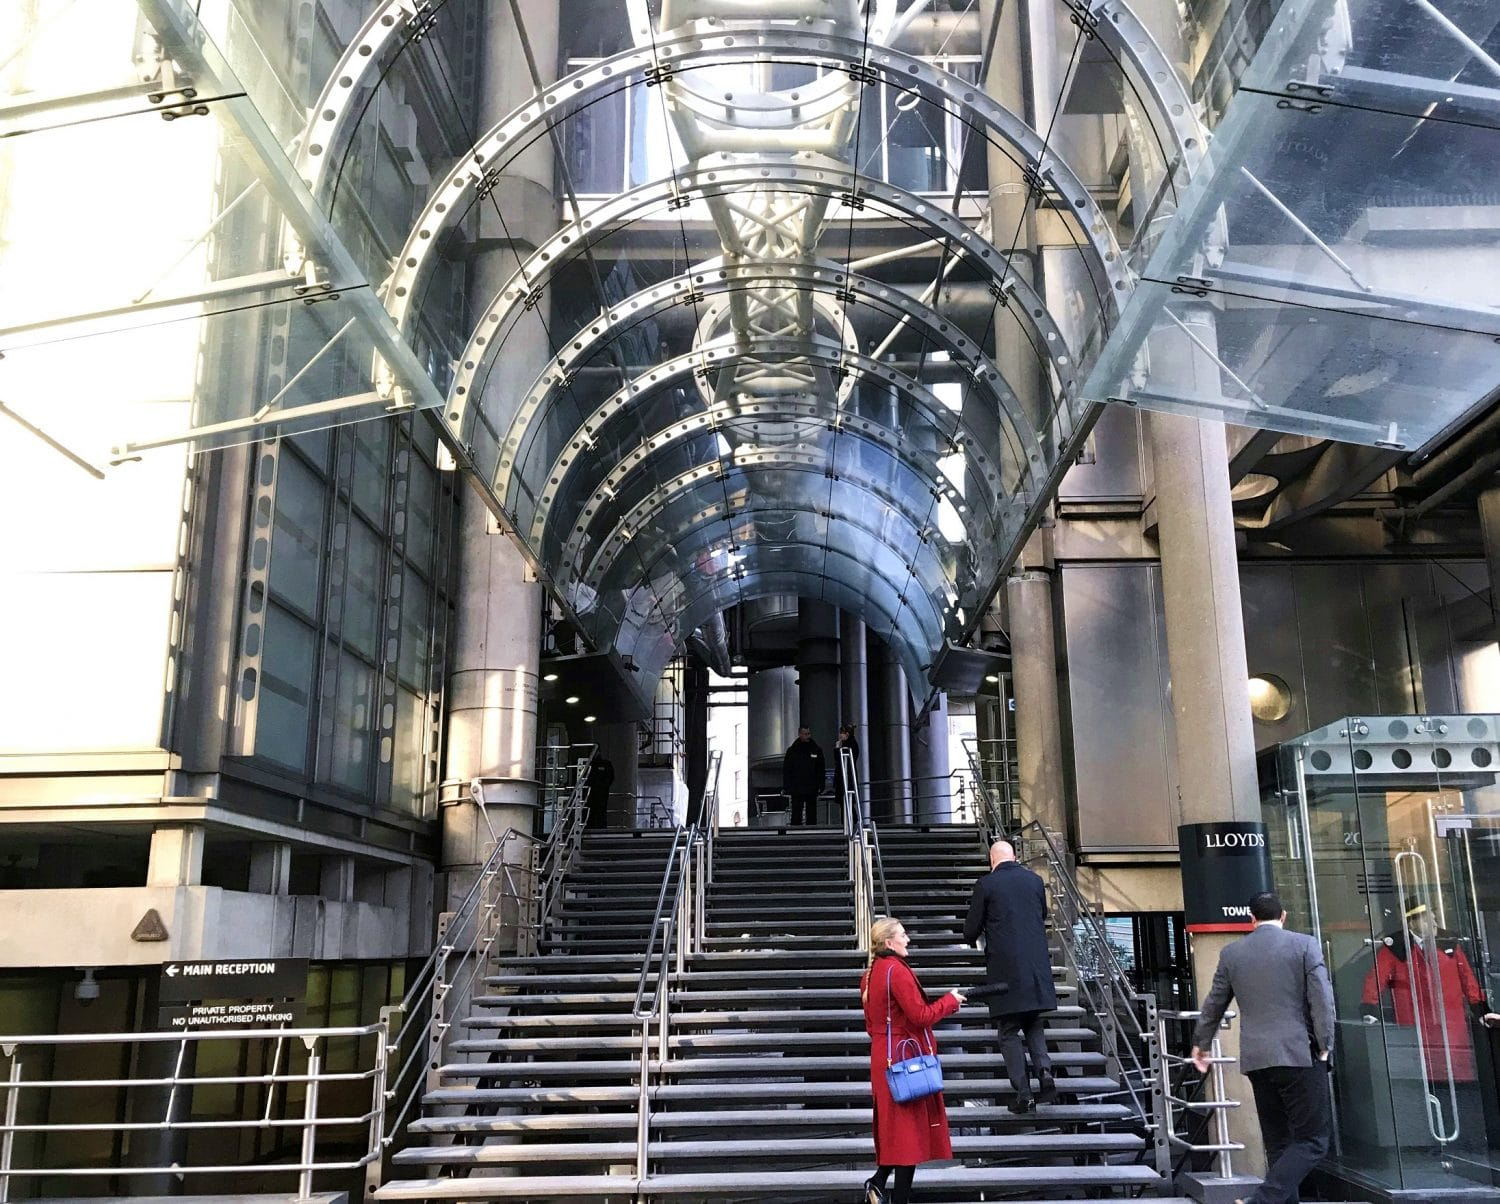 Walk past the striking Lloyds of London building on your City tour